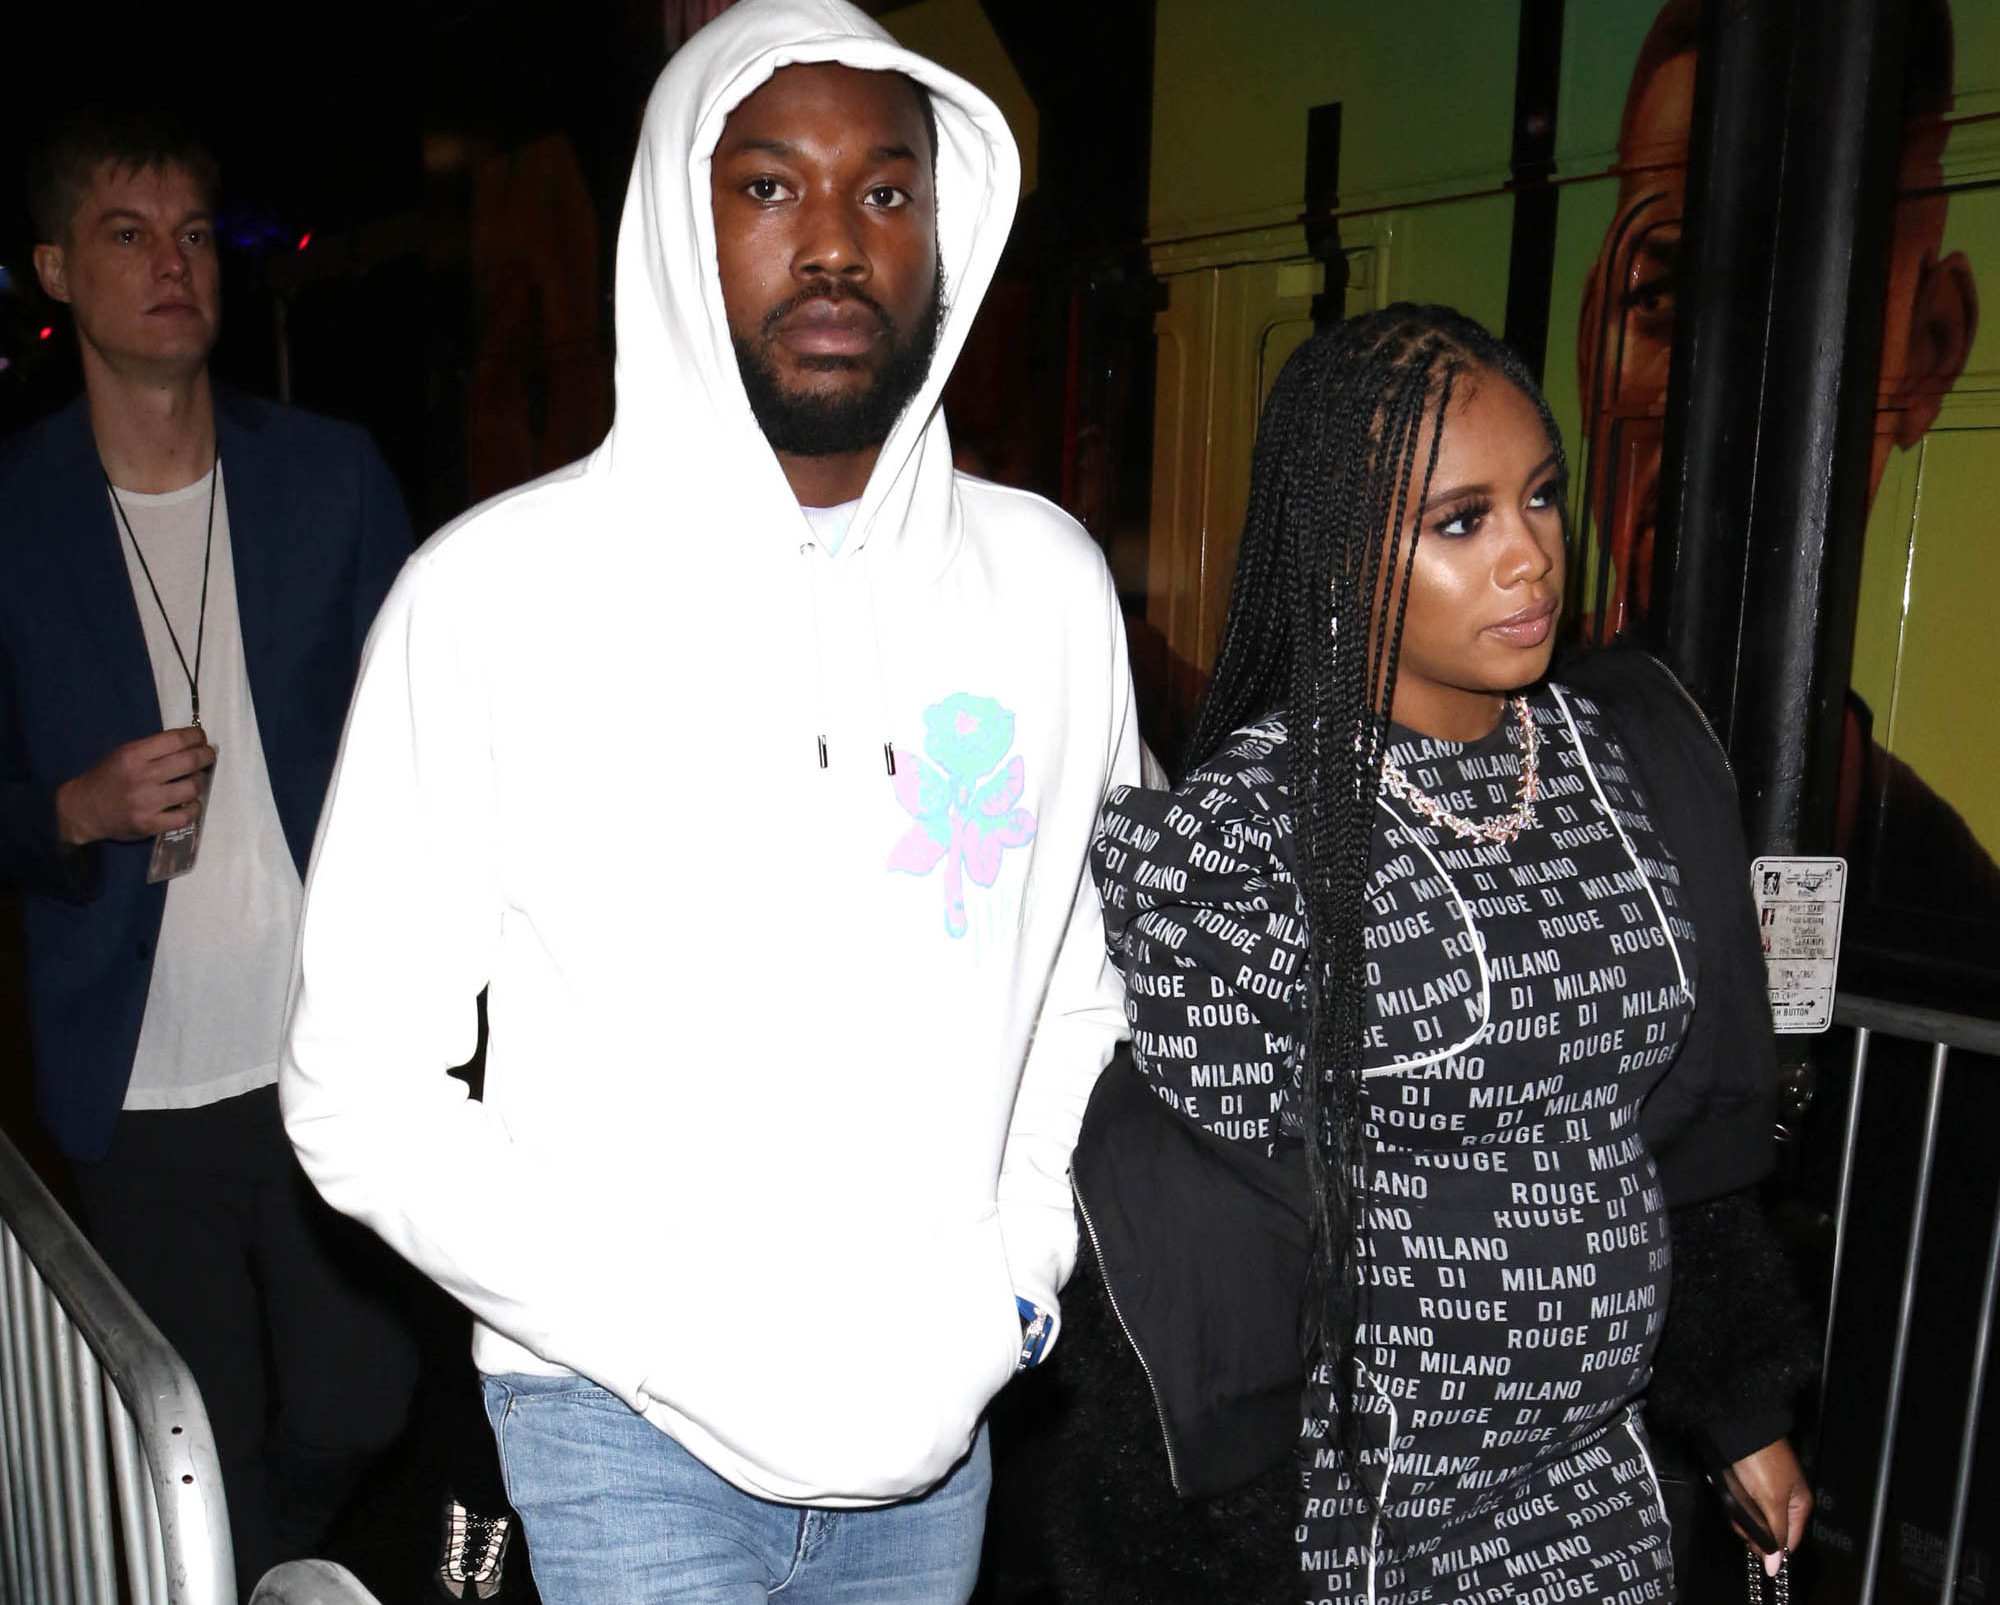 Meek Mill pictured with his rumored boo Milan Rouge